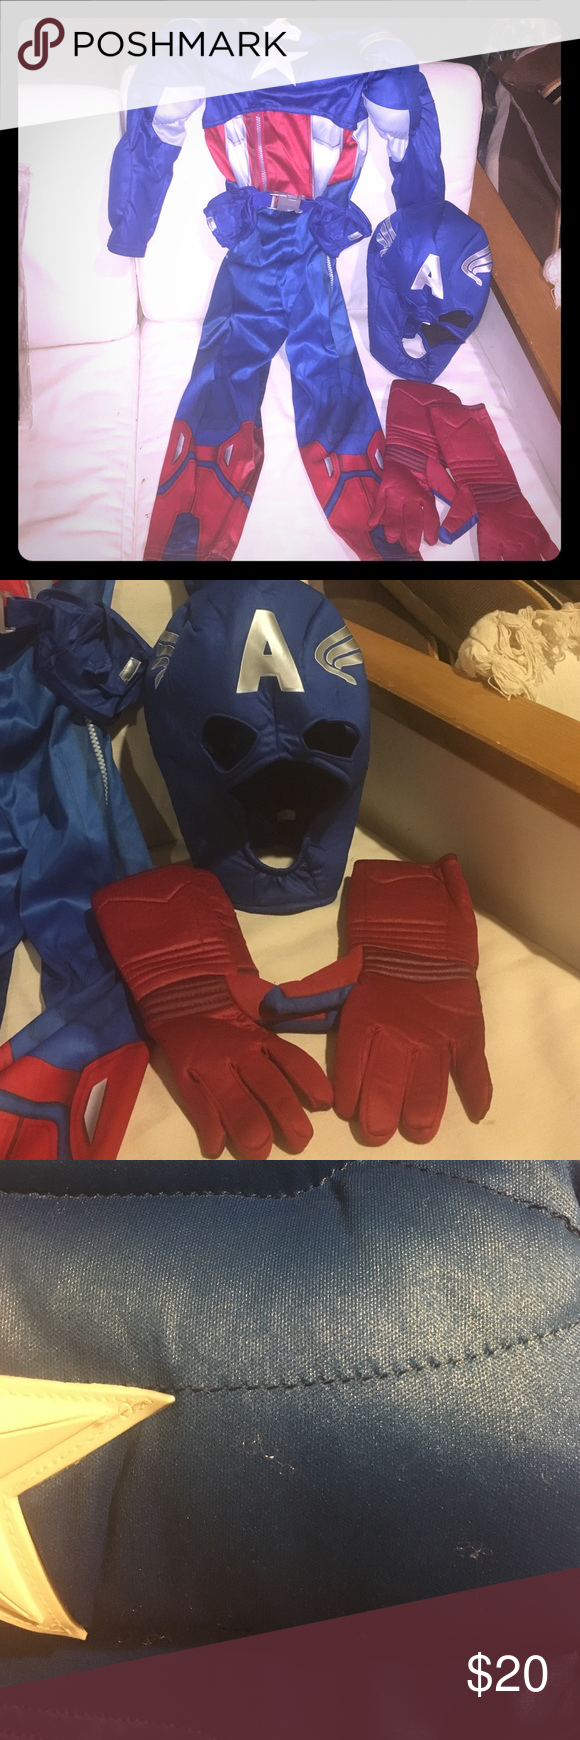 Kids Disney store Captain America costume size 5/6 Kids Disney store Captain America costume size 5/6. Includes one piece outfit, gloves and mask. Only wore once. Has little pools. Not noticeable pictured above. Costumes